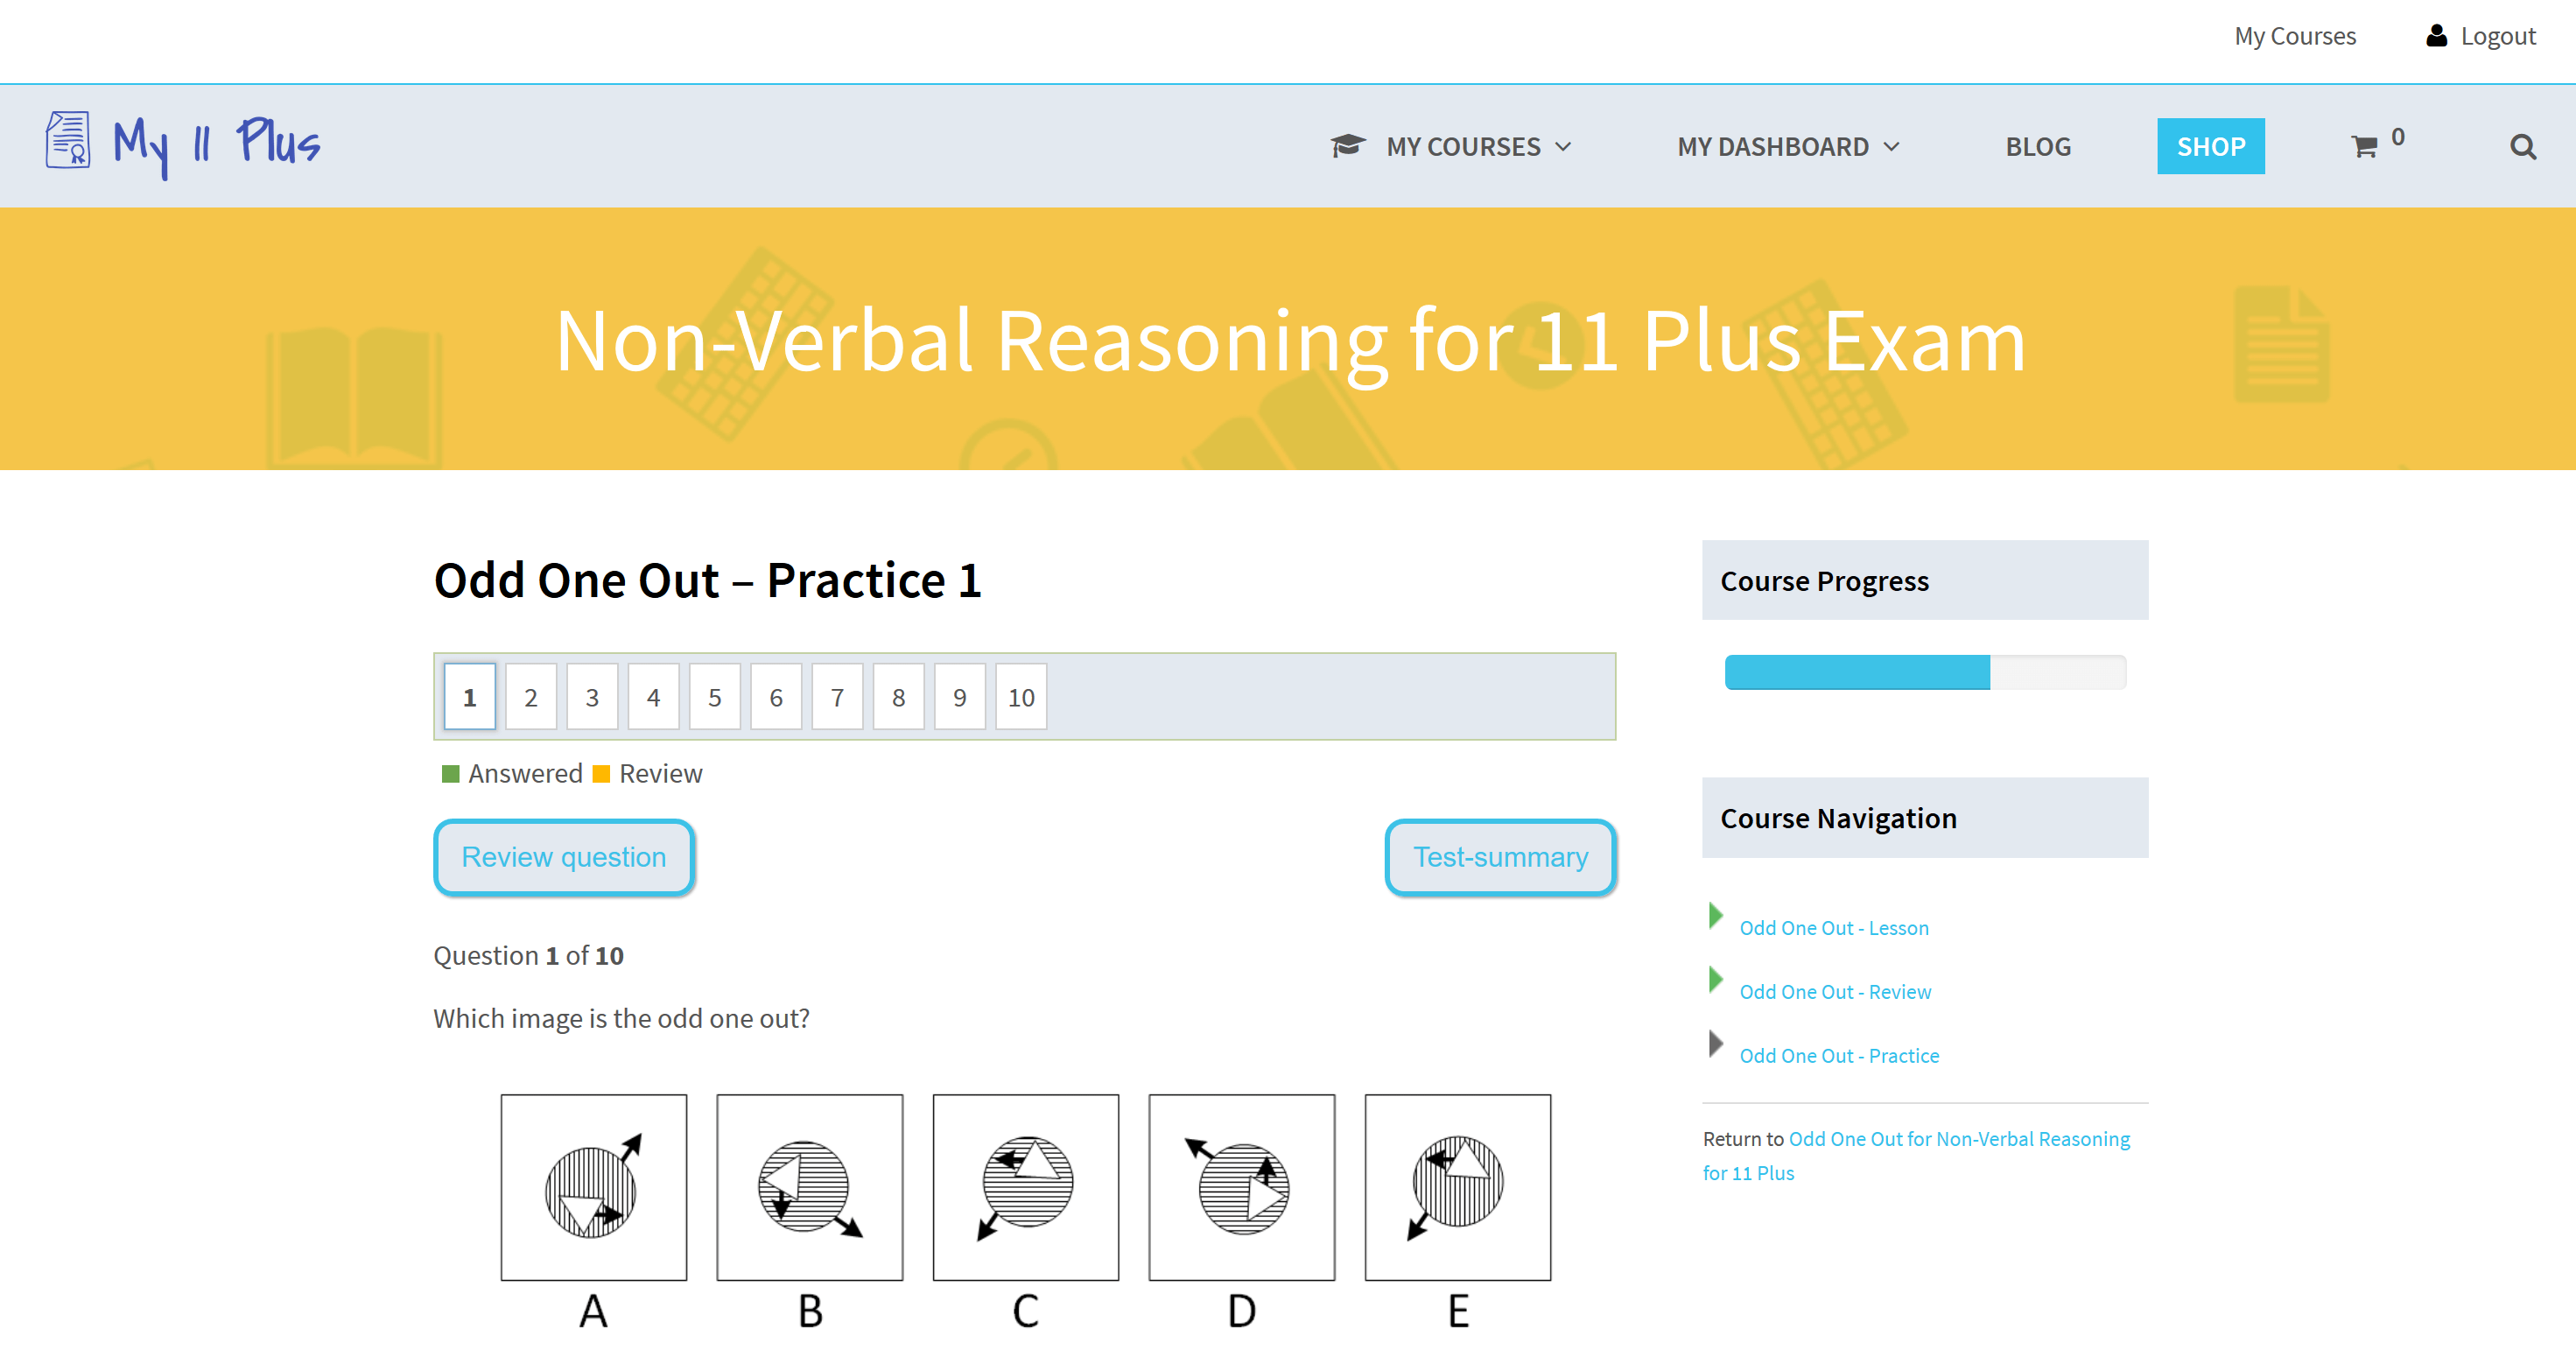 11 plus exam preparation for Kent, Bucks, Lincs